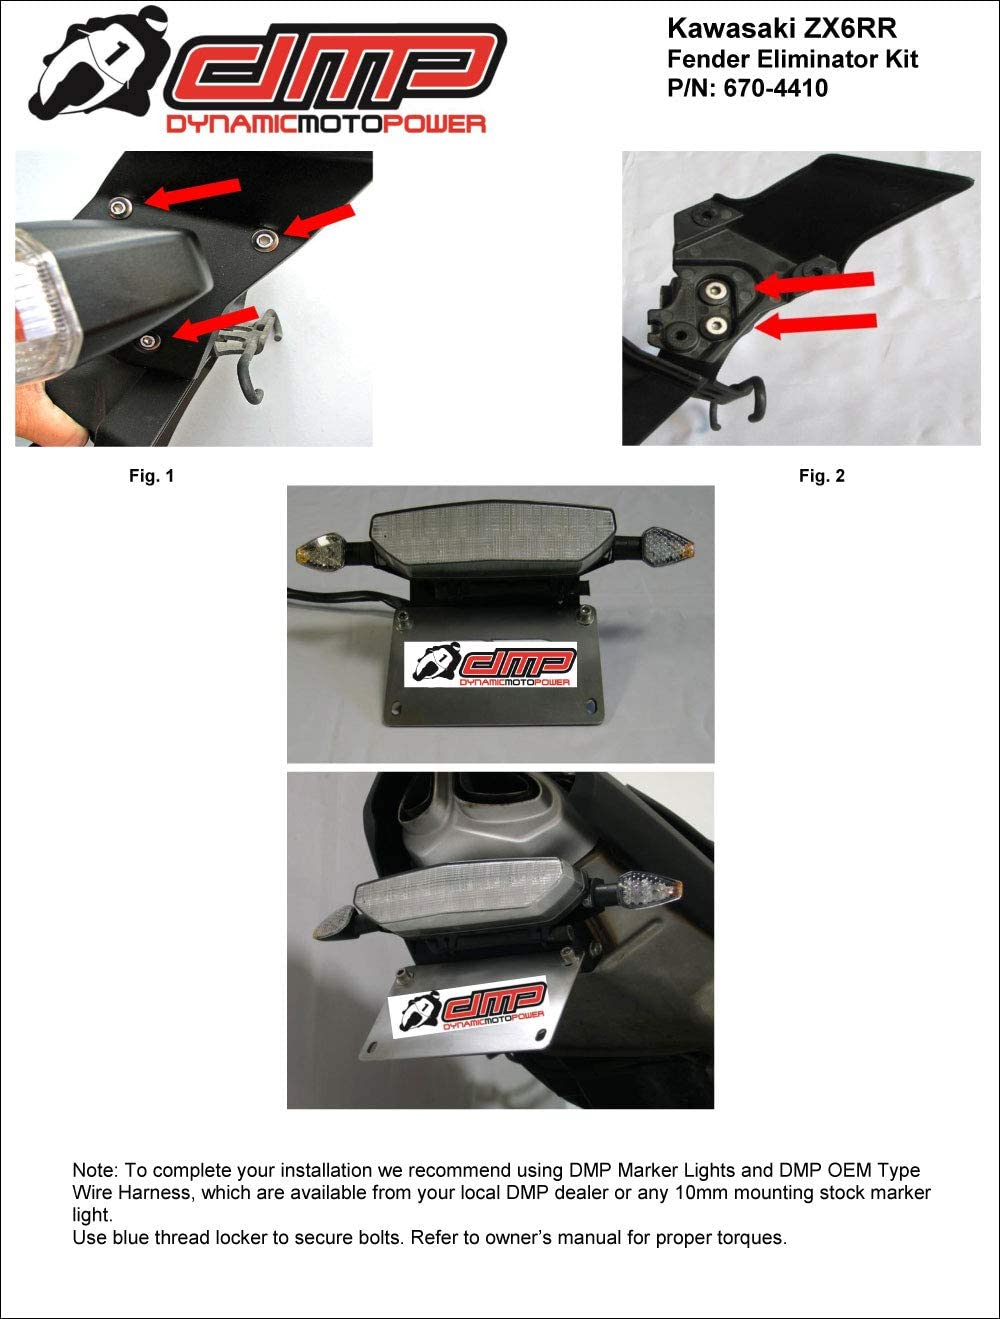 MADE IN THE USA 675-4410 2007-2008 Kawasaki ZX6R Fender Eliminator Kit; Includes Turn Signals and Plate Lights